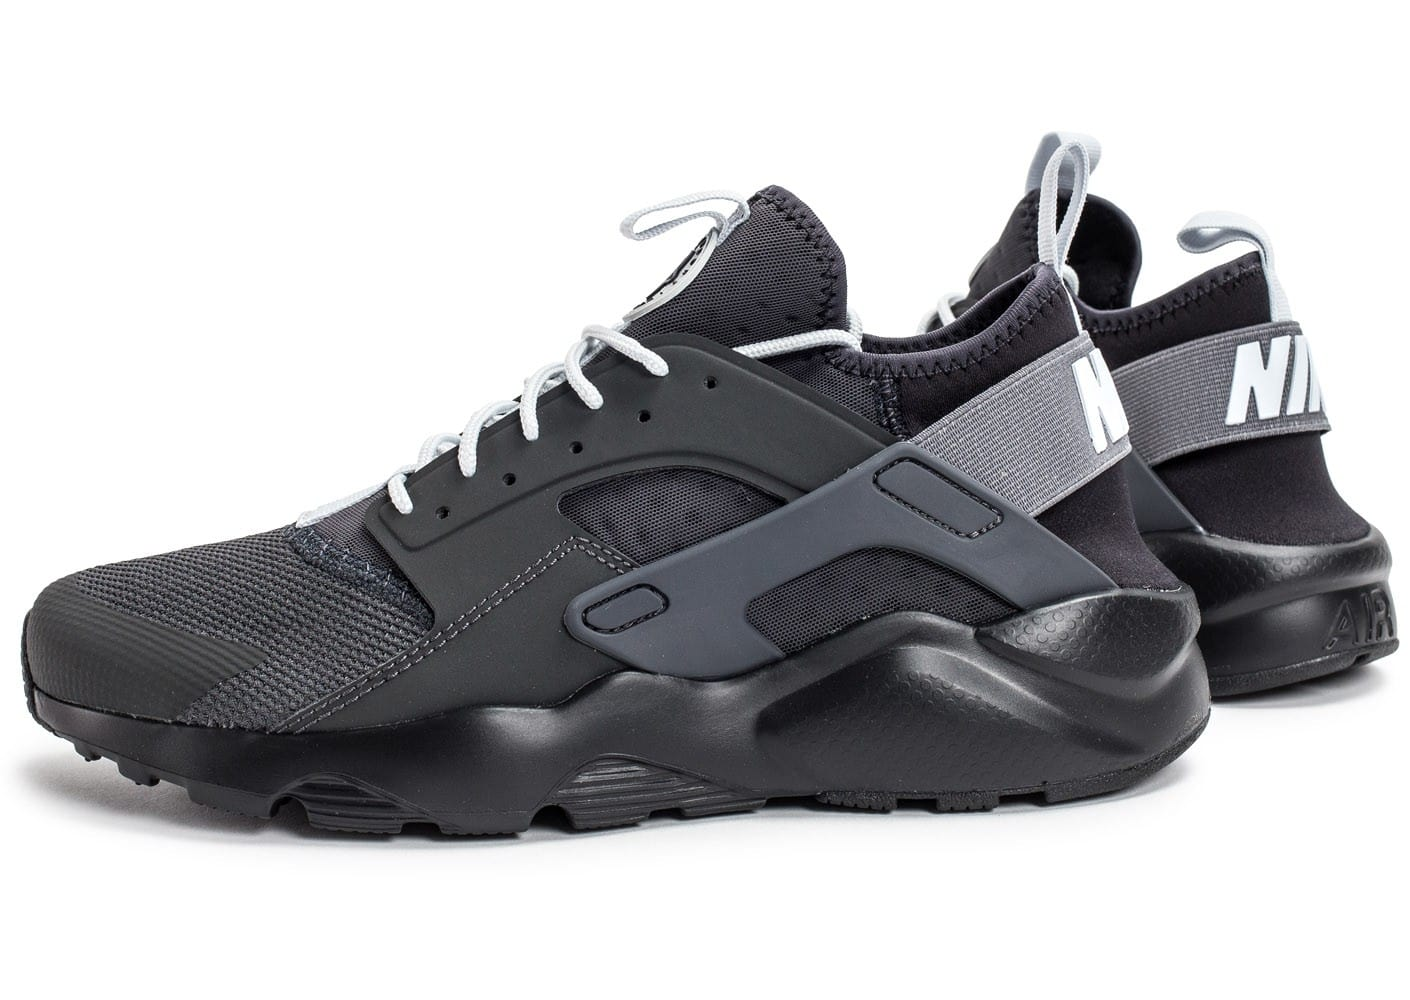 Nike Air Huarache Run Ultra Cool noire et blanche ...